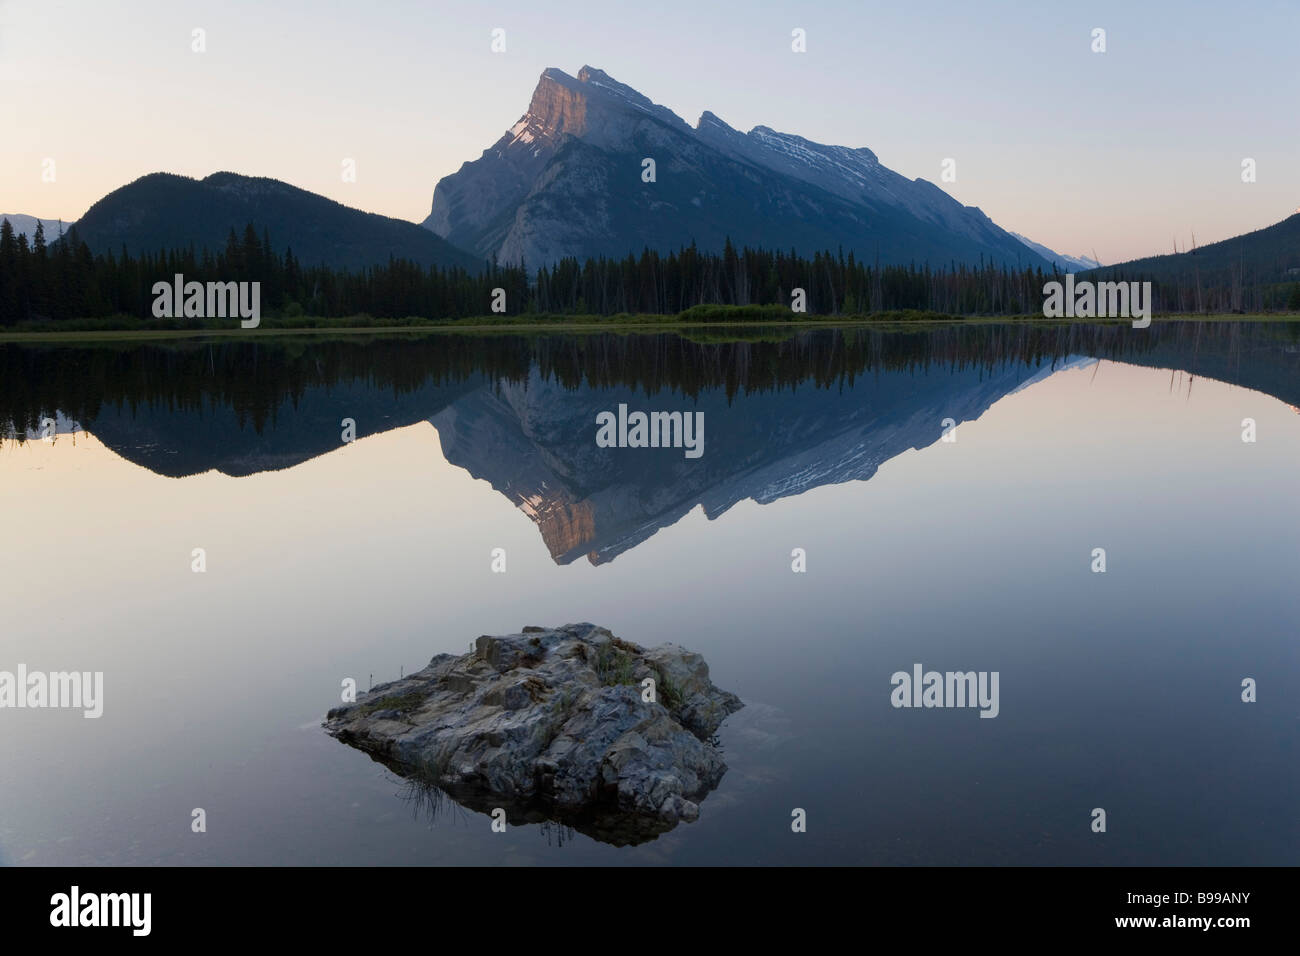 Le mont Rundle & Lac Vermillion, Banff National Park, Alberta, Canada Photo Stock